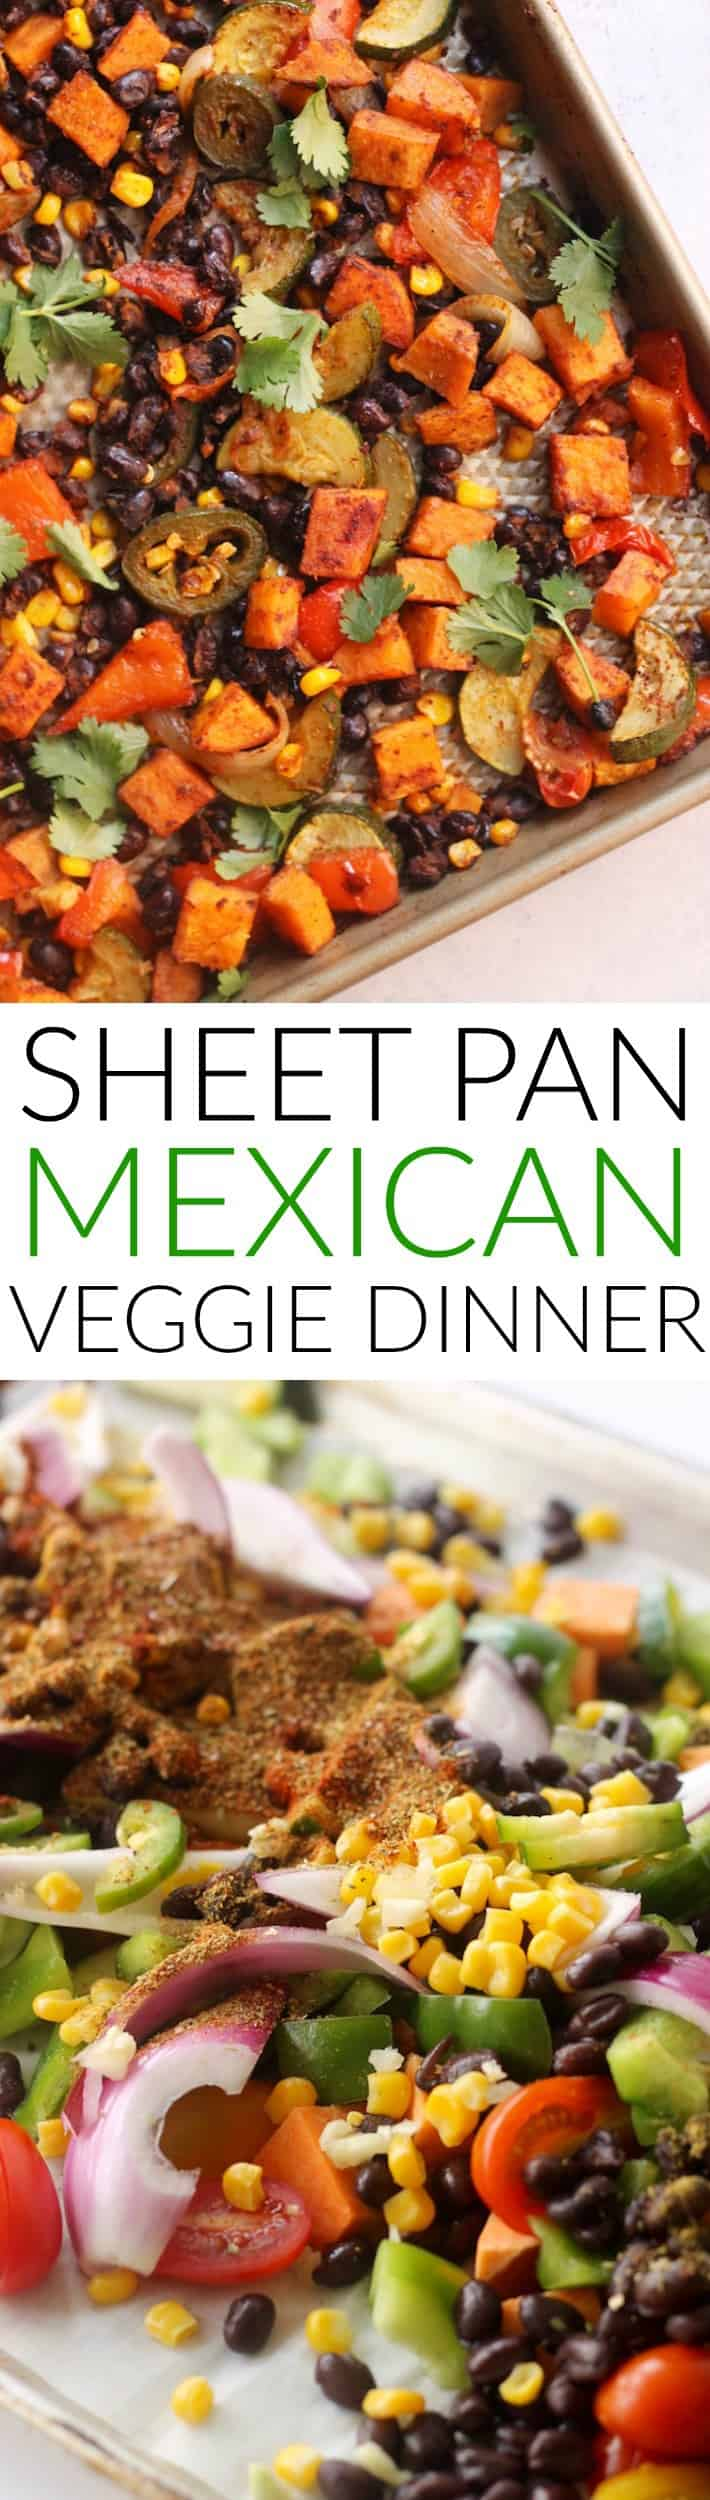 This one-pan, plant-powered Sheet Pan Mexican Veggie Dinner with avocado crema makes cooking a breeze! Enjoy this hearty, flavorful mix as is or as taco filling with avocado and salsa. Vegan and gluten-free.